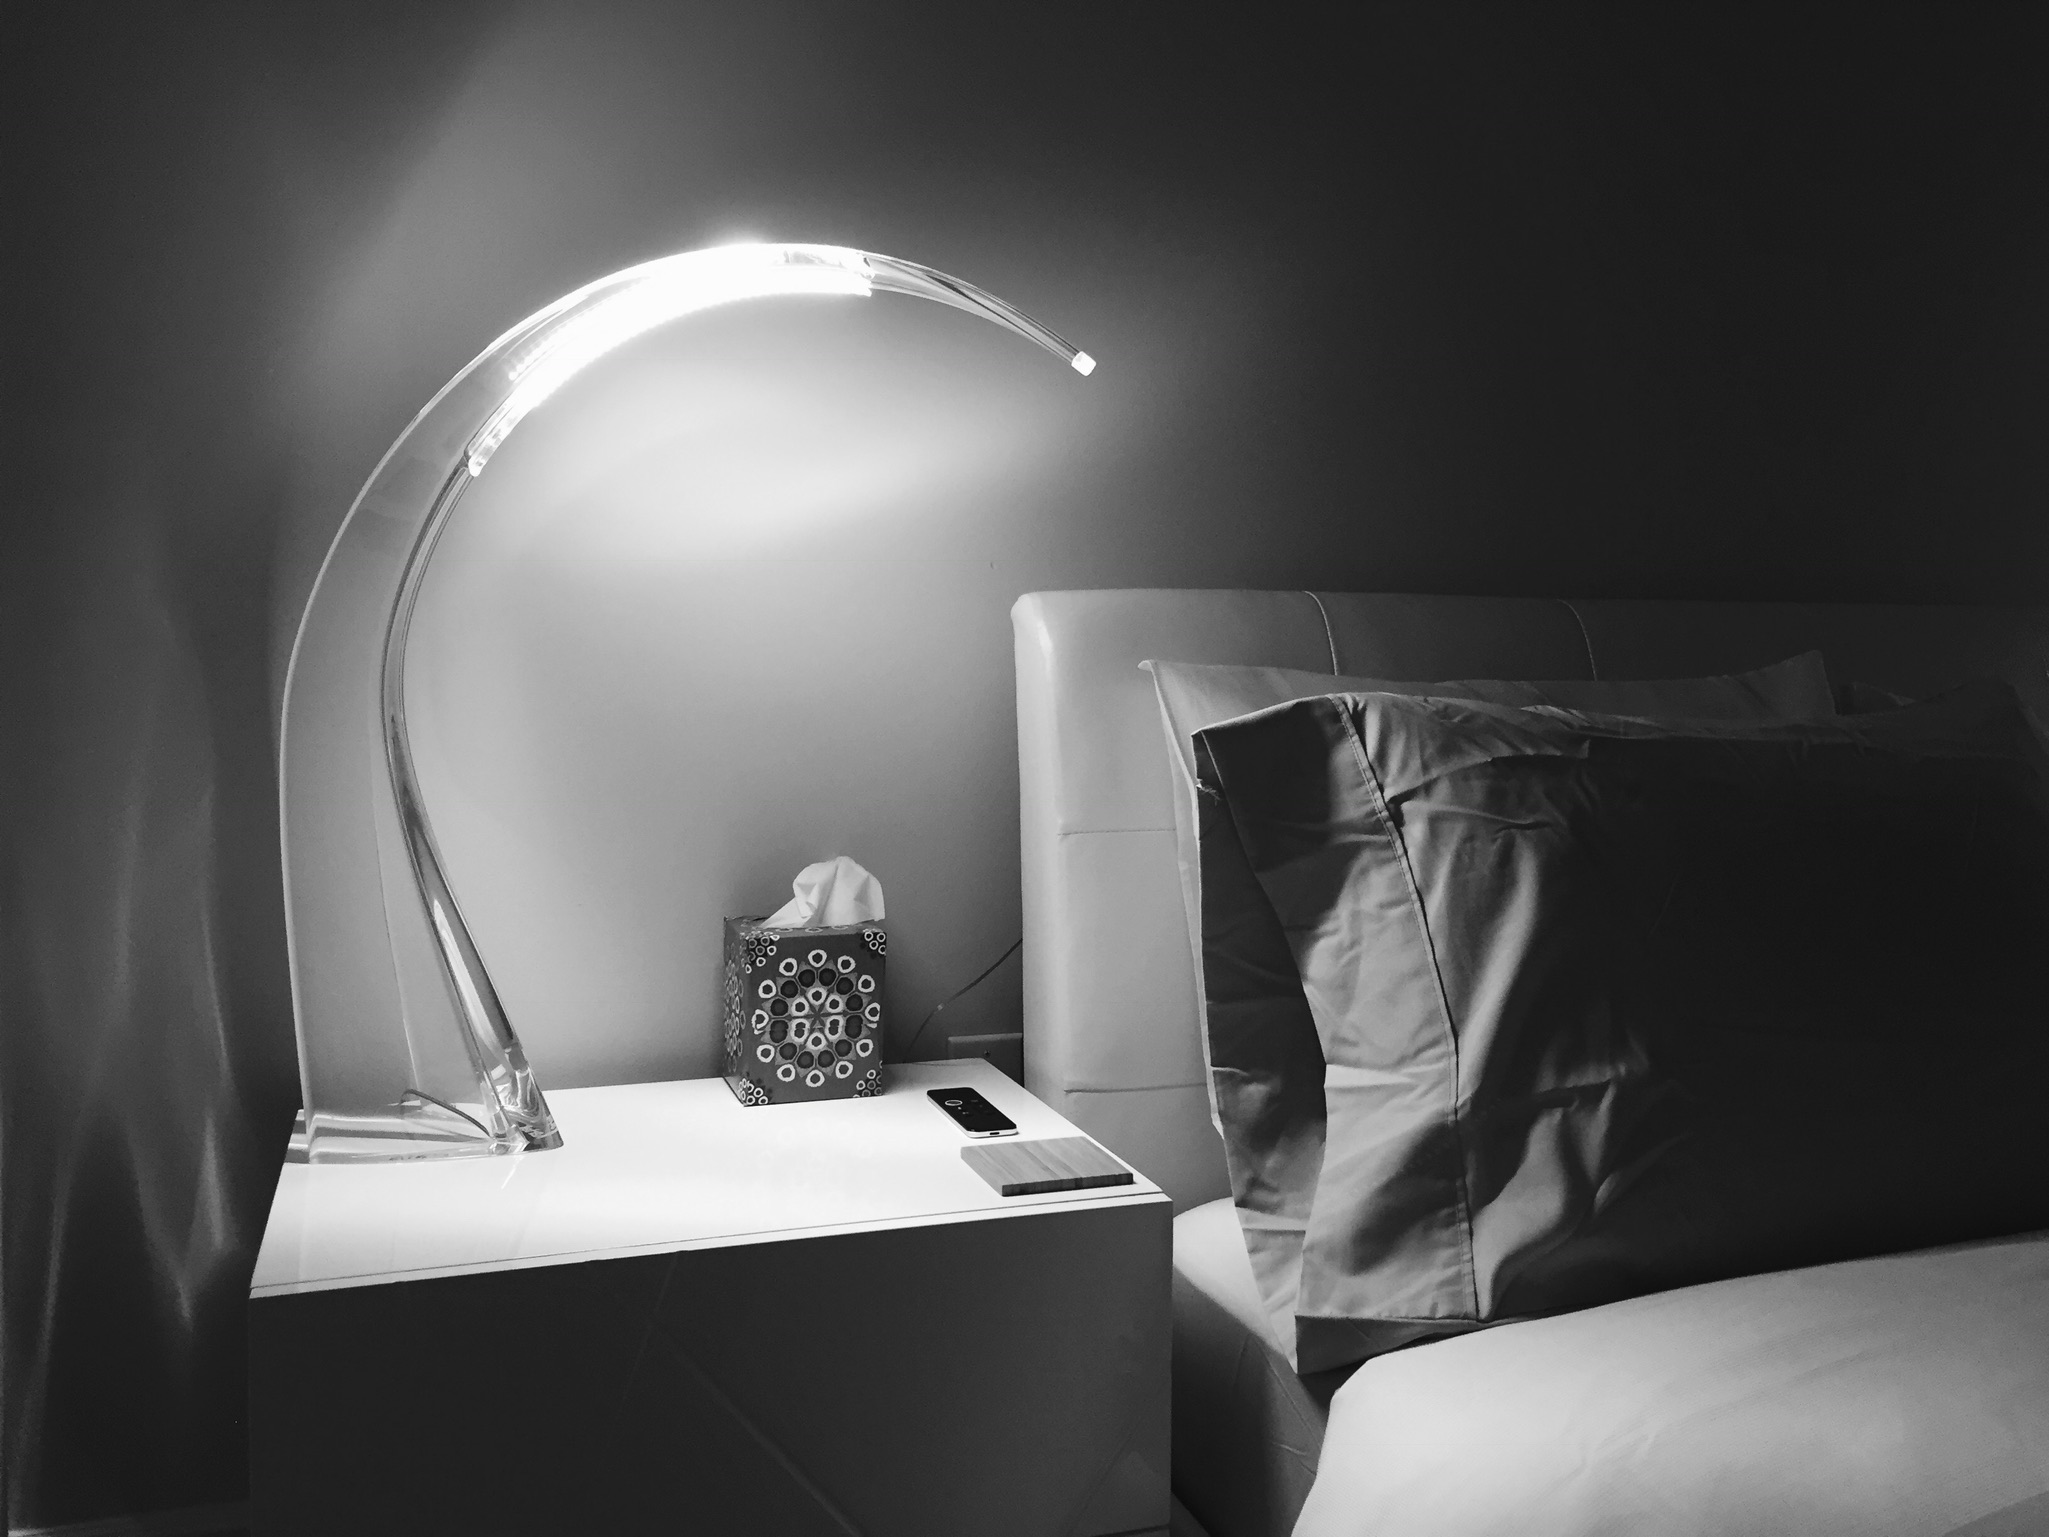 The Taj Table Lamp - Described by designer Ferruccio Laviani as both essential and bold, the Kartell Taj LED Table Lamp is uncluttered, minimal, and incredibly sensual. The strength of the piece is instantly evident (inspired by the graceful curve of an elephant's tusk), and the touch sensor/slide dimmer is intrinsic to the fixture, located right below the LED array.